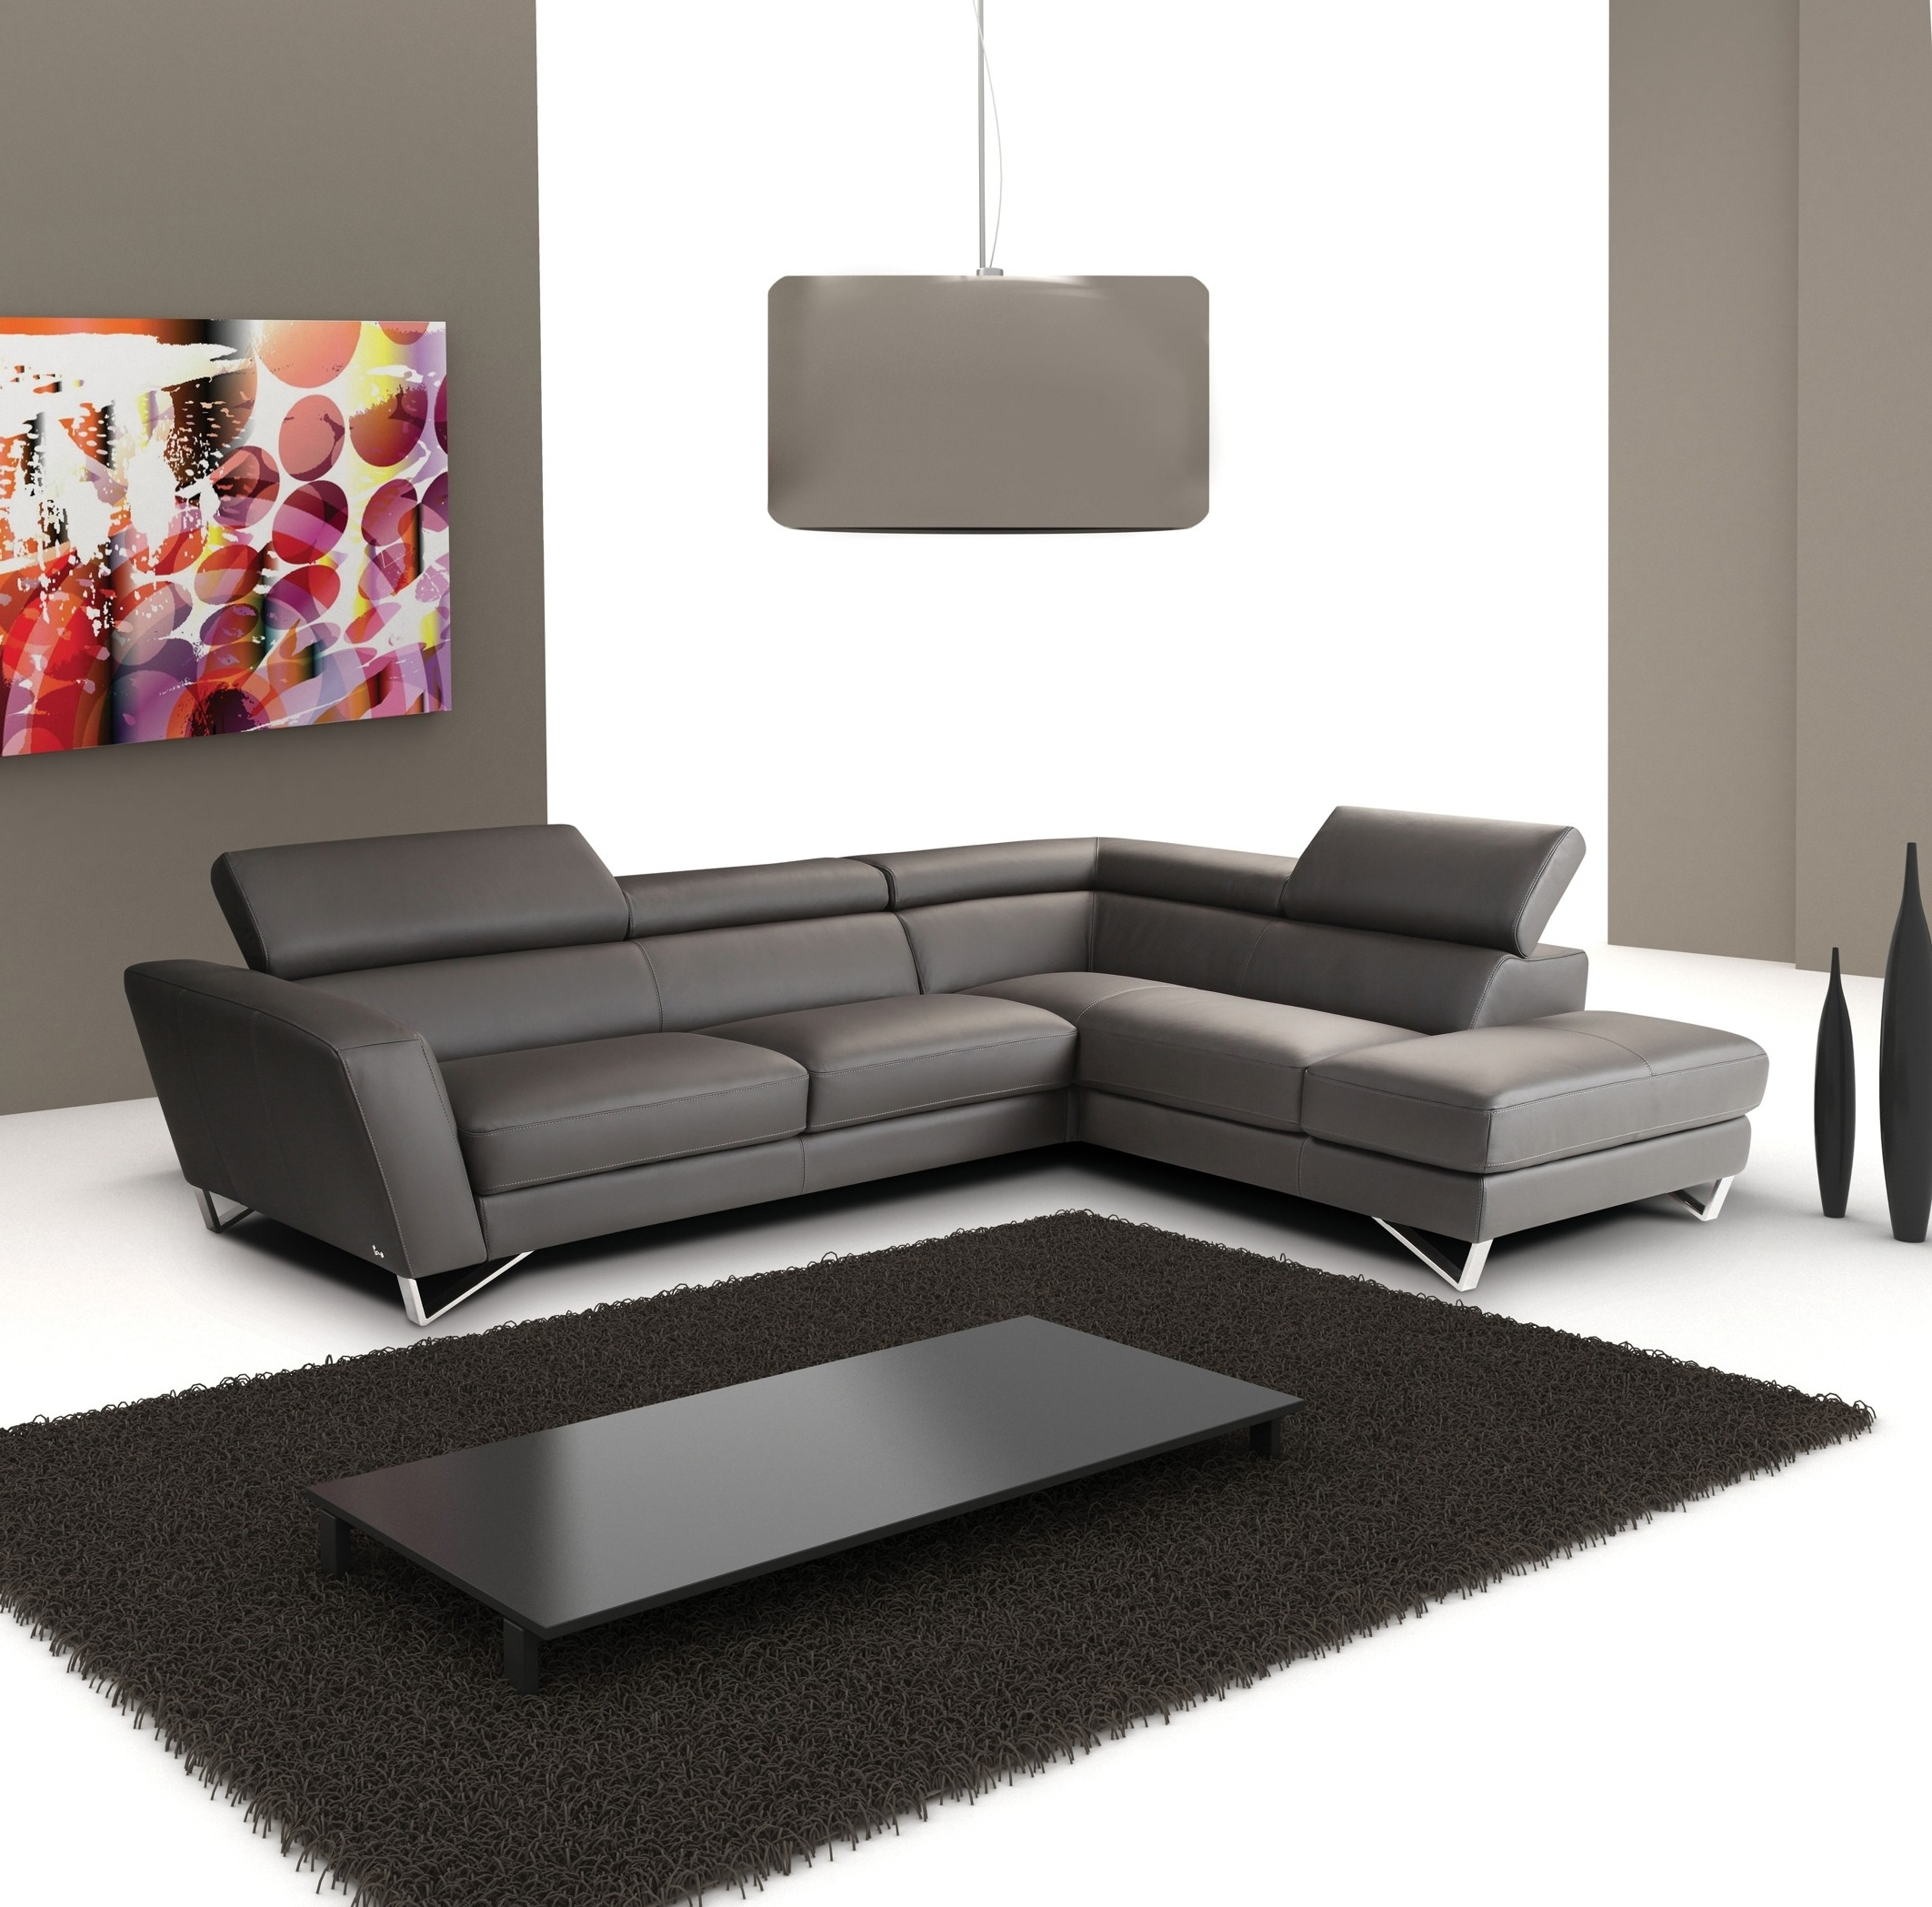 Trendy Modern Sectional Sofas In Sparta Italian Leather Modern Sectional Sofa (View 15 of 15)